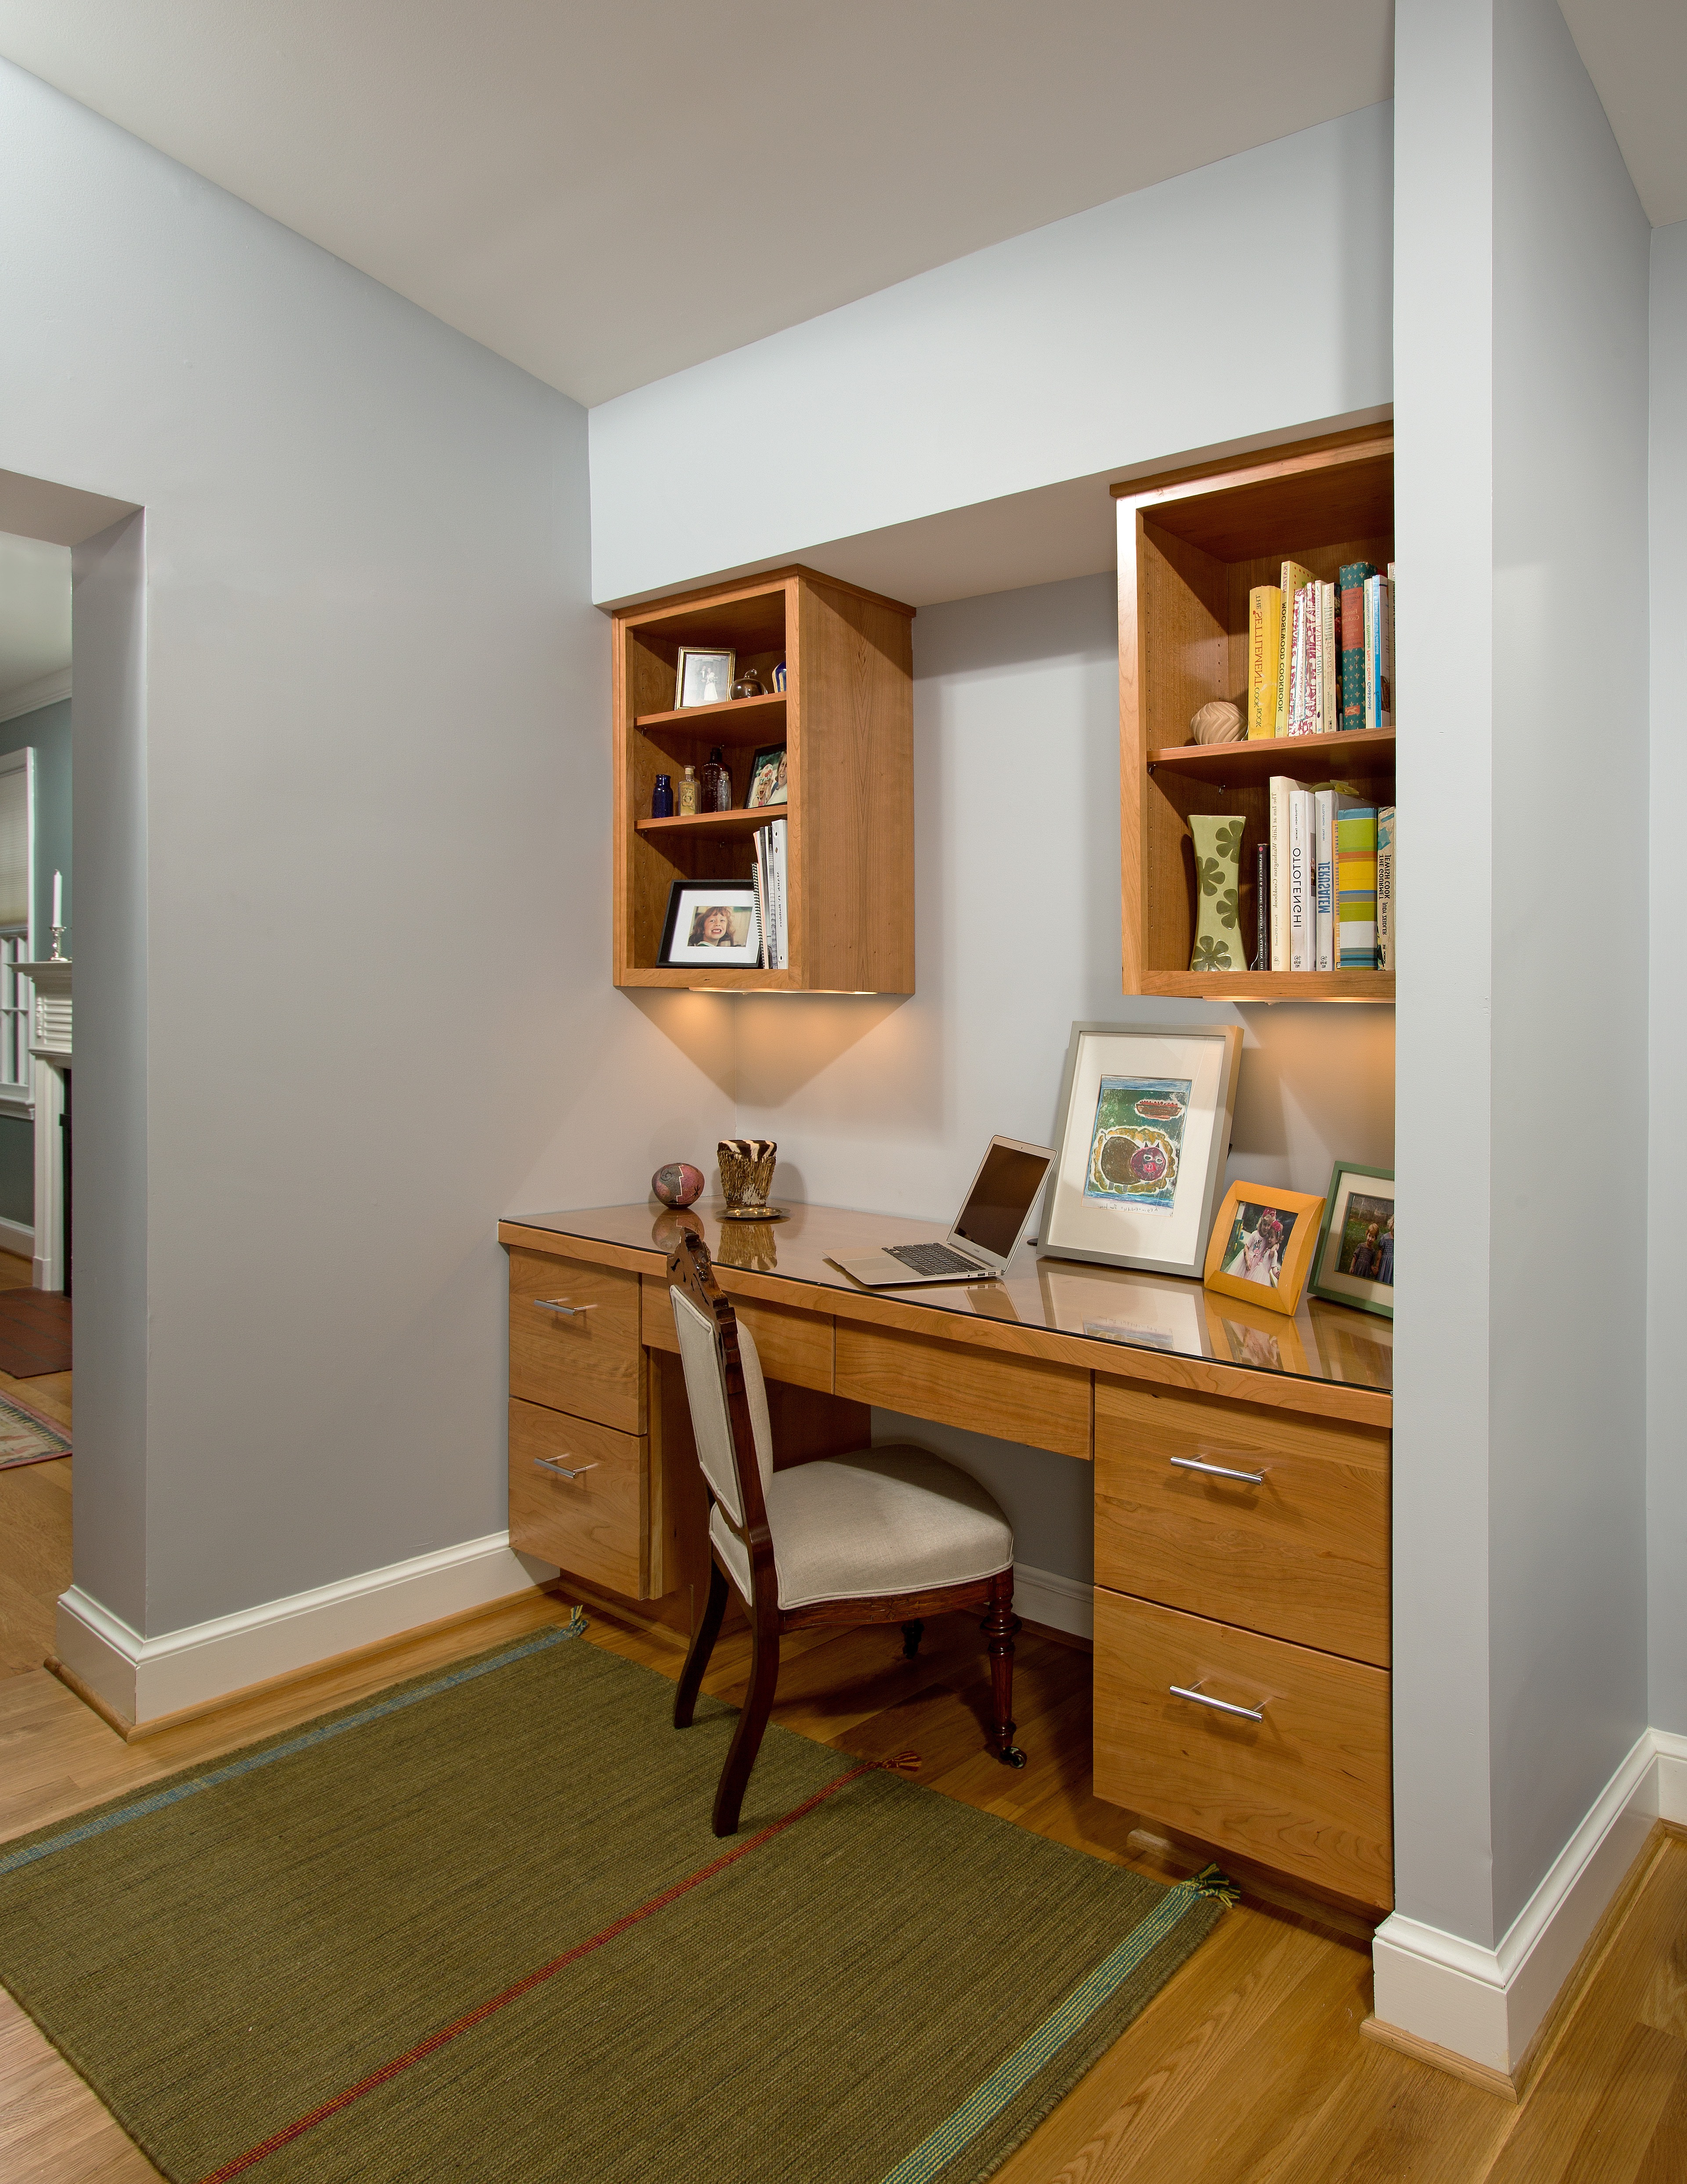 Smart Modern Home Office Decor In The Corner (View 49 of 50)